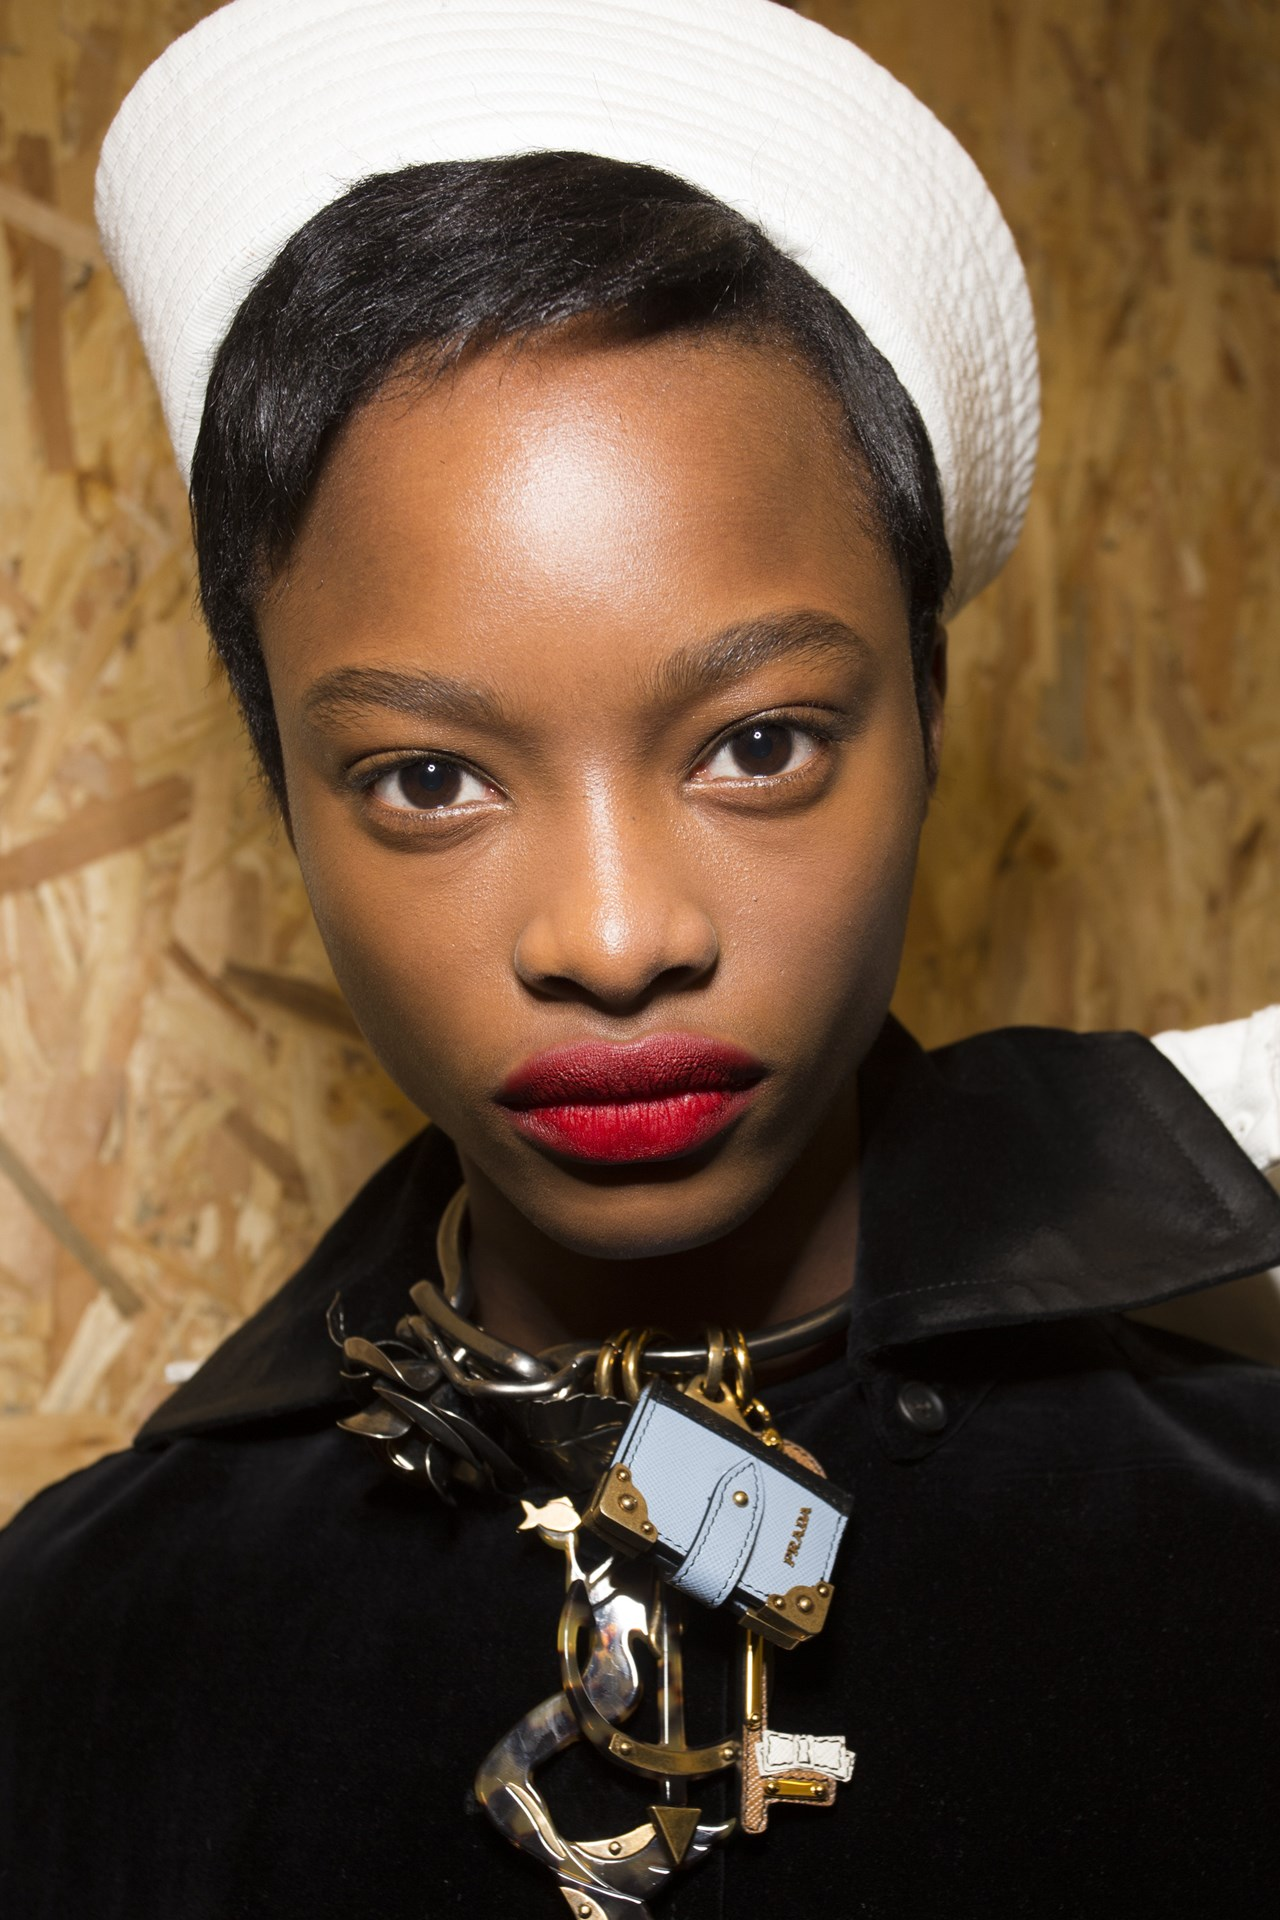 Prada - Matt red lips, groomed brows and fresh skin made up Pat McGrath's beauty look for Prada.